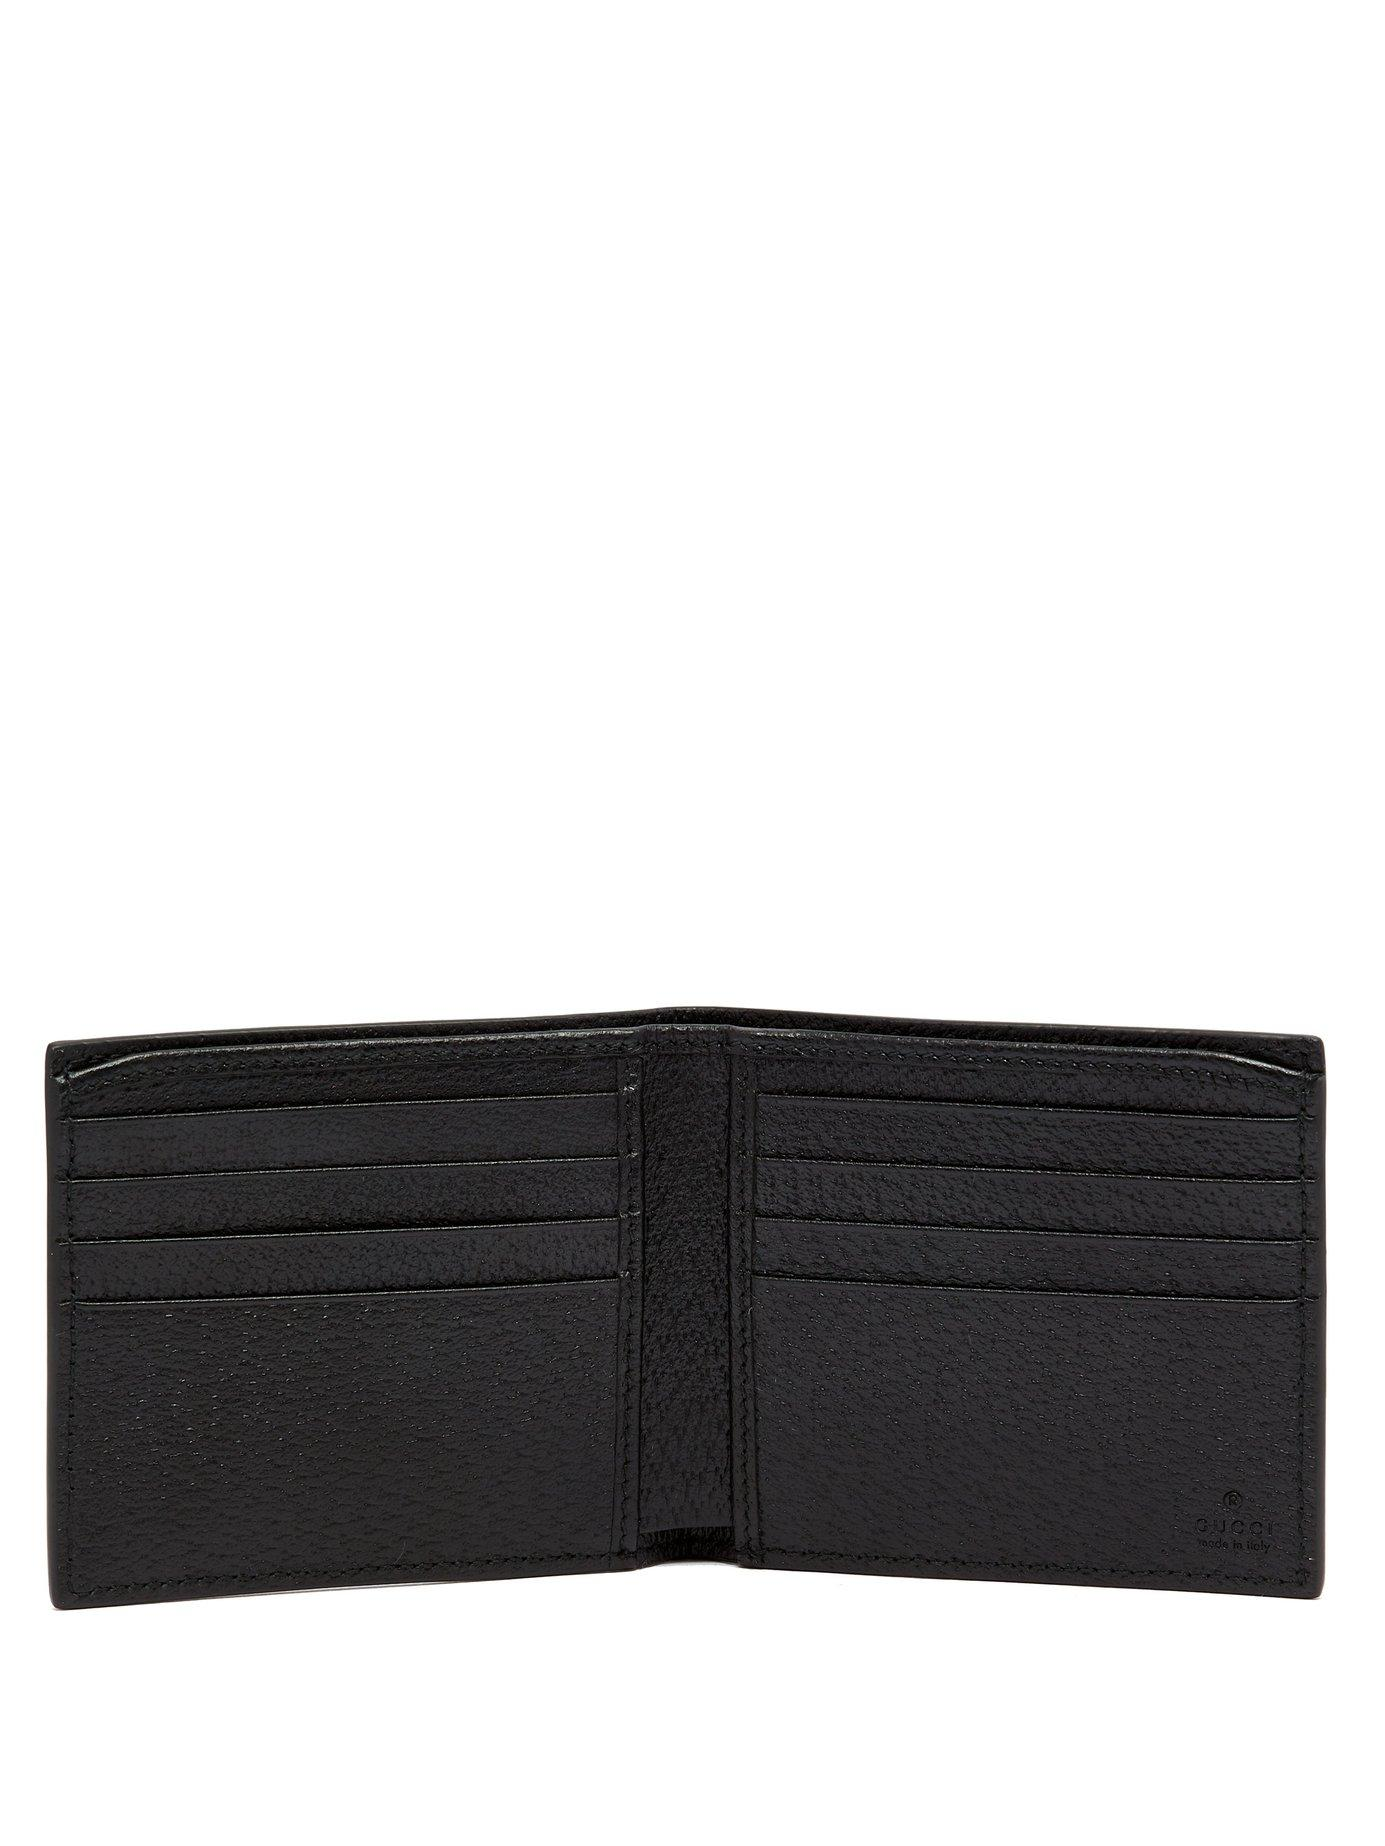 6e9f7536ab1 Lyst - Gucci Gg Marmont Grained Leather Bi Fold Wallet in Black for Men -  Save 16%